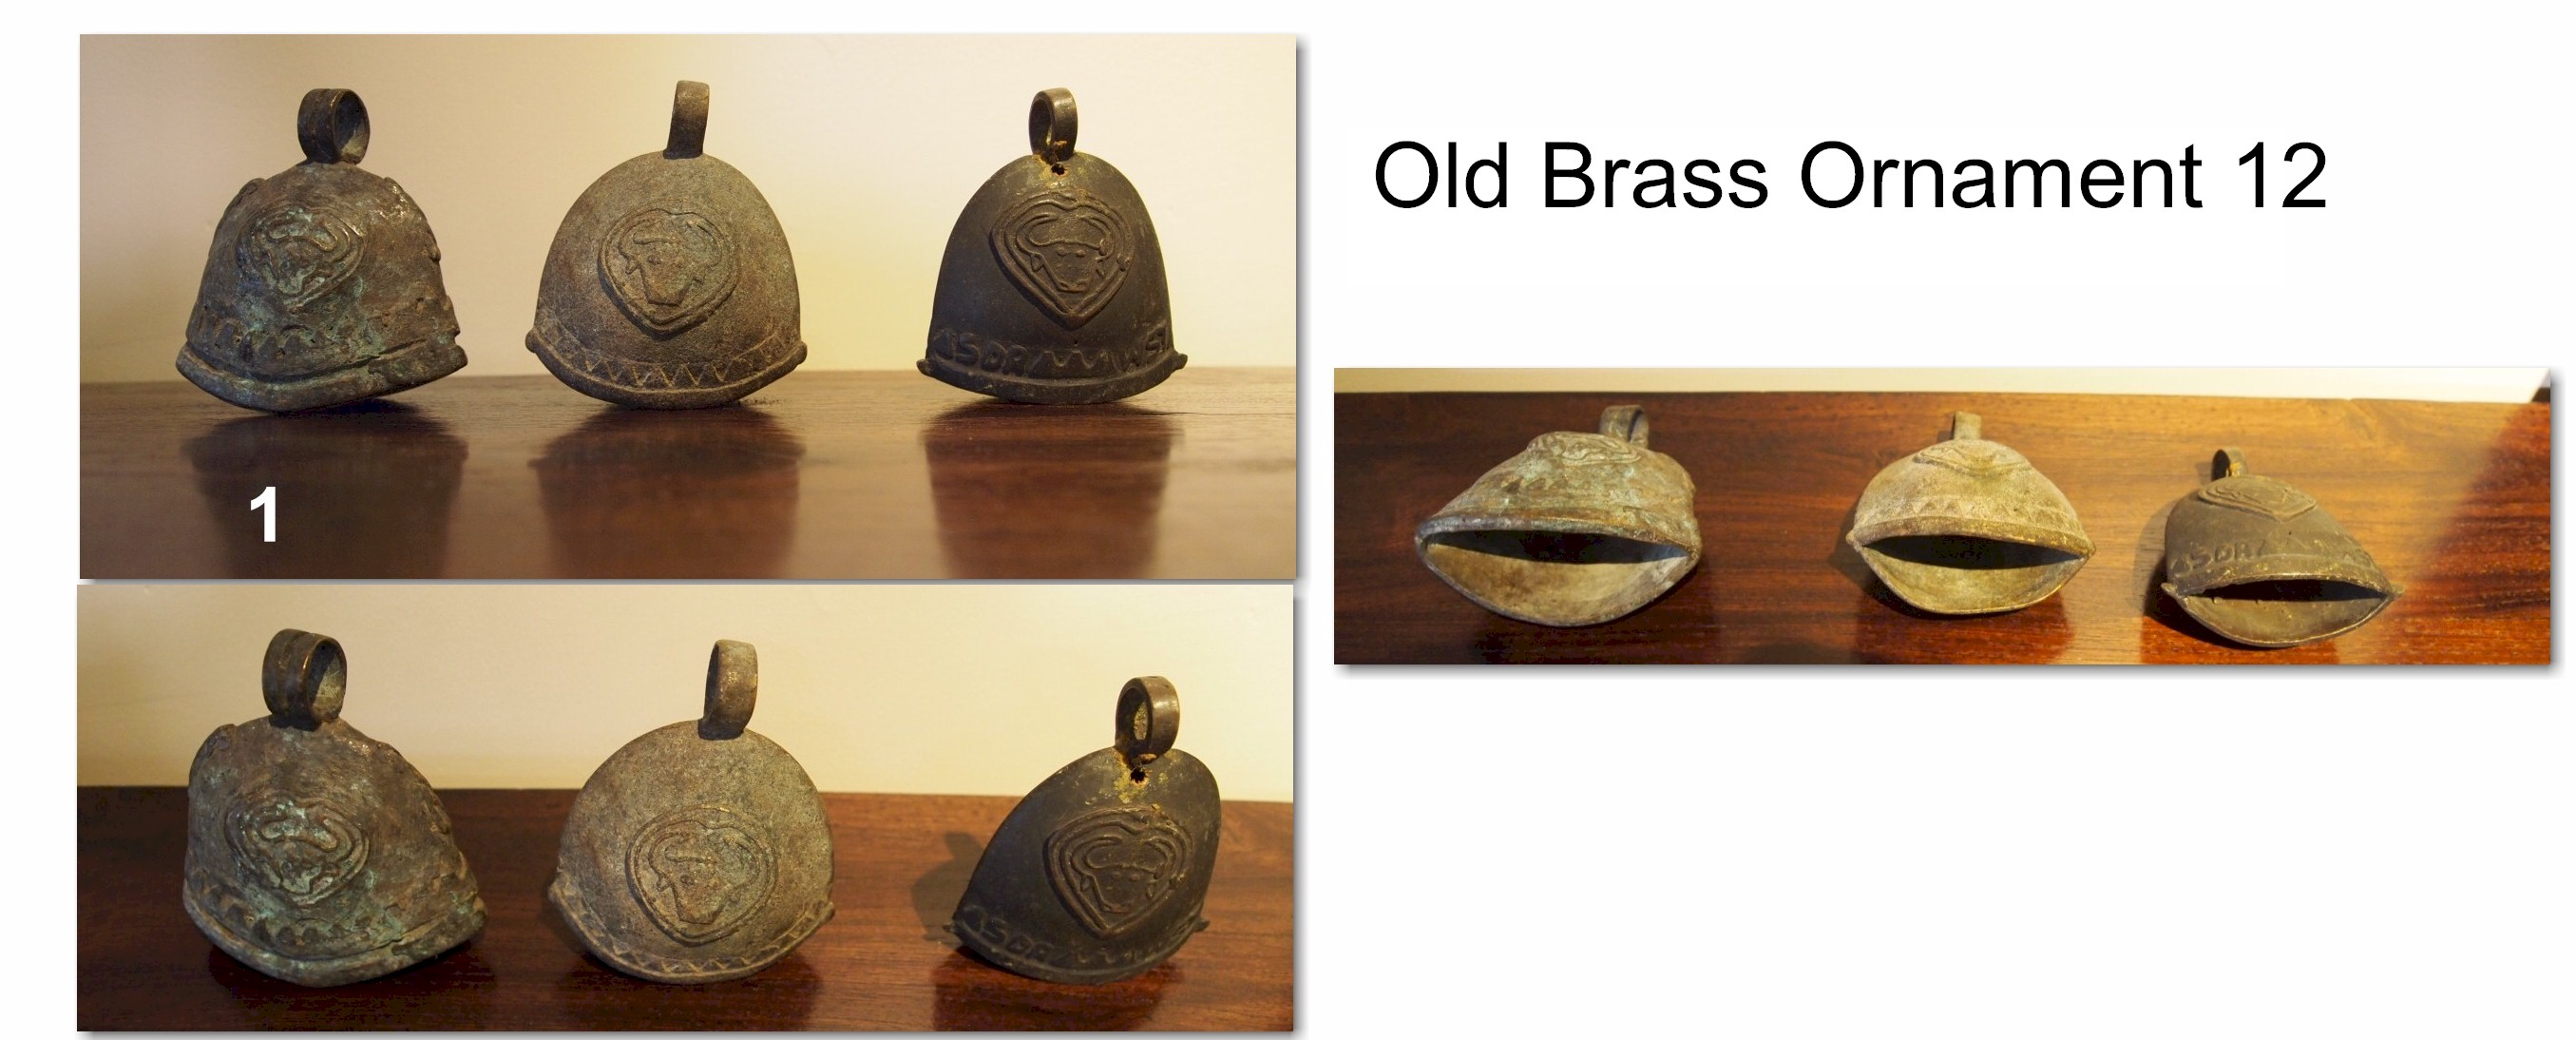 Old Brass Ornament 12